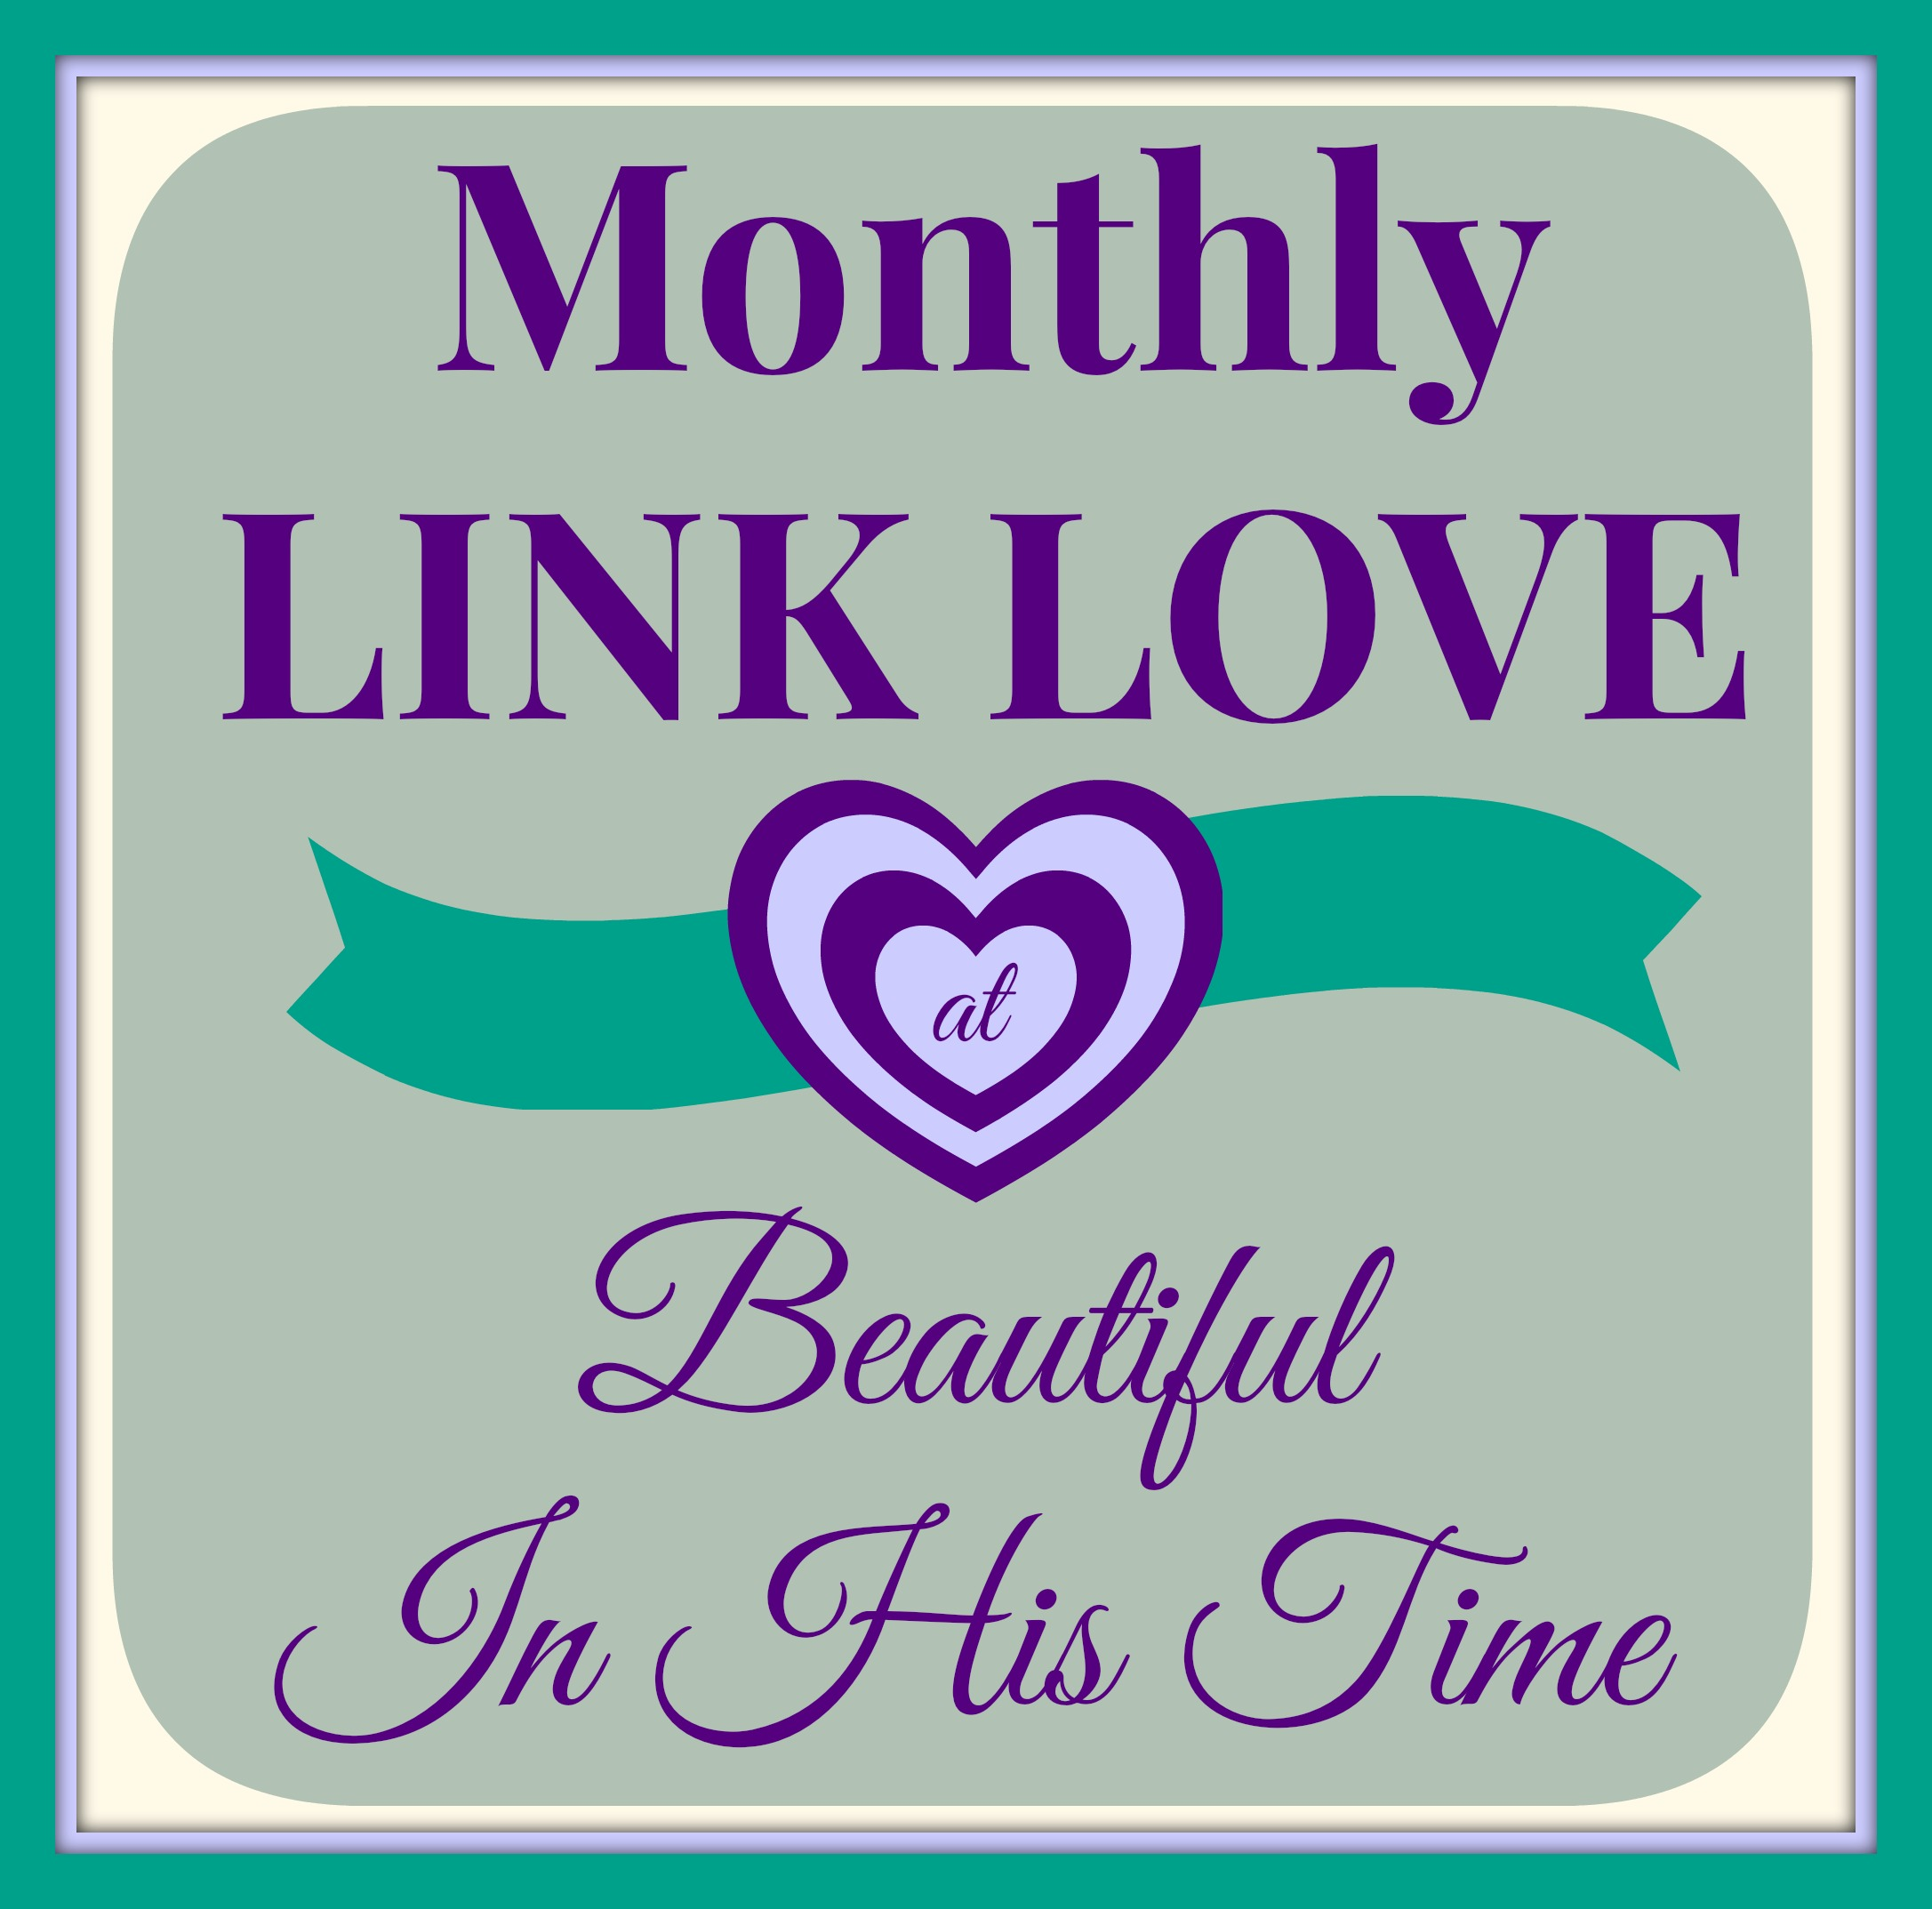 February Link Love @ Beautifulinhistime.com